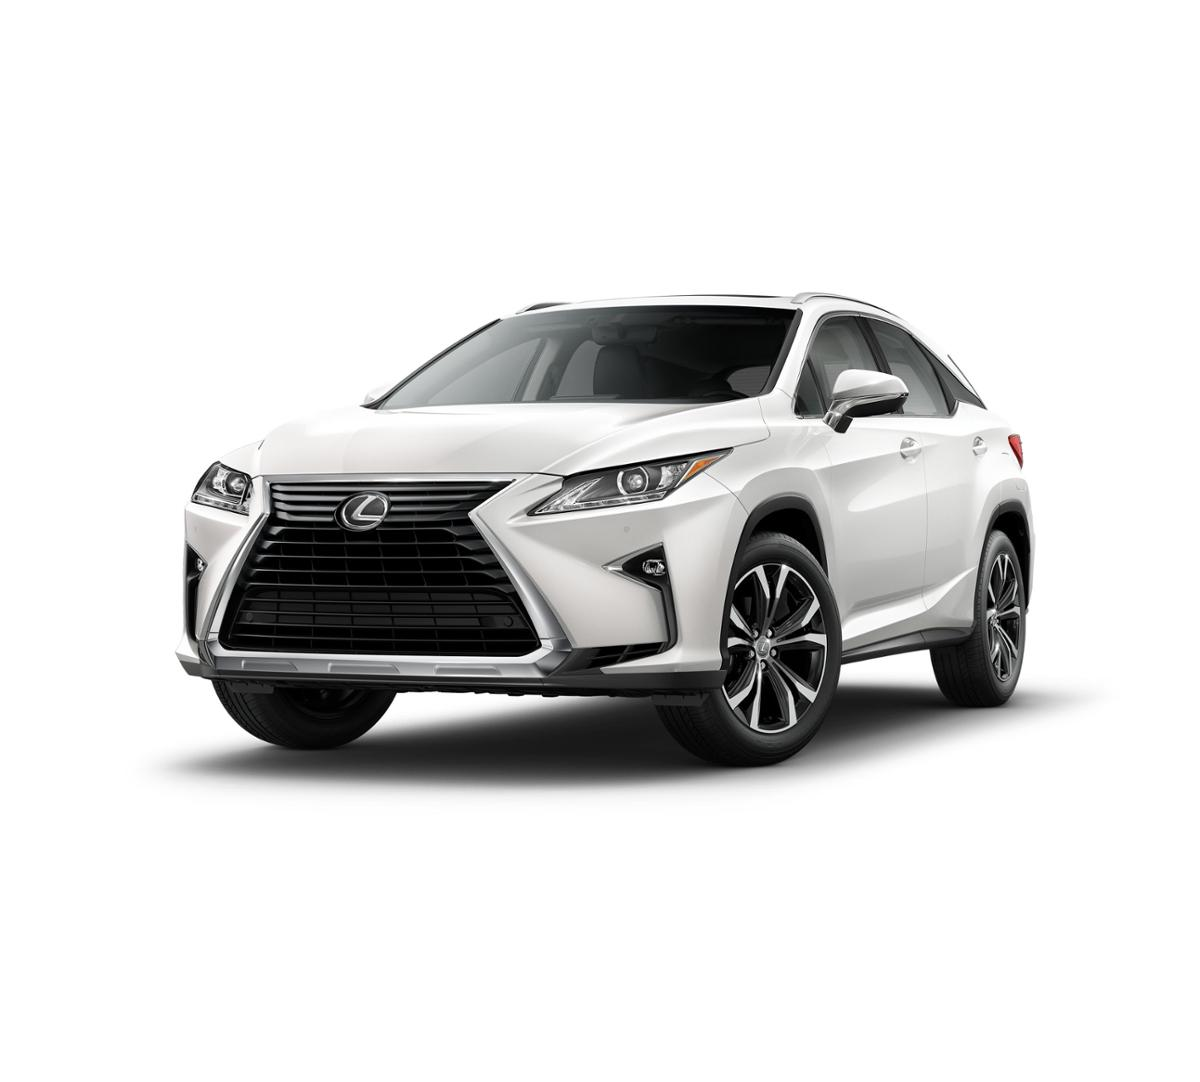 2017 lexus rx 350 for sale in tustin jtjbzmca5h2016914. Black Bedroom Furniture Sets. Home Design Ideas